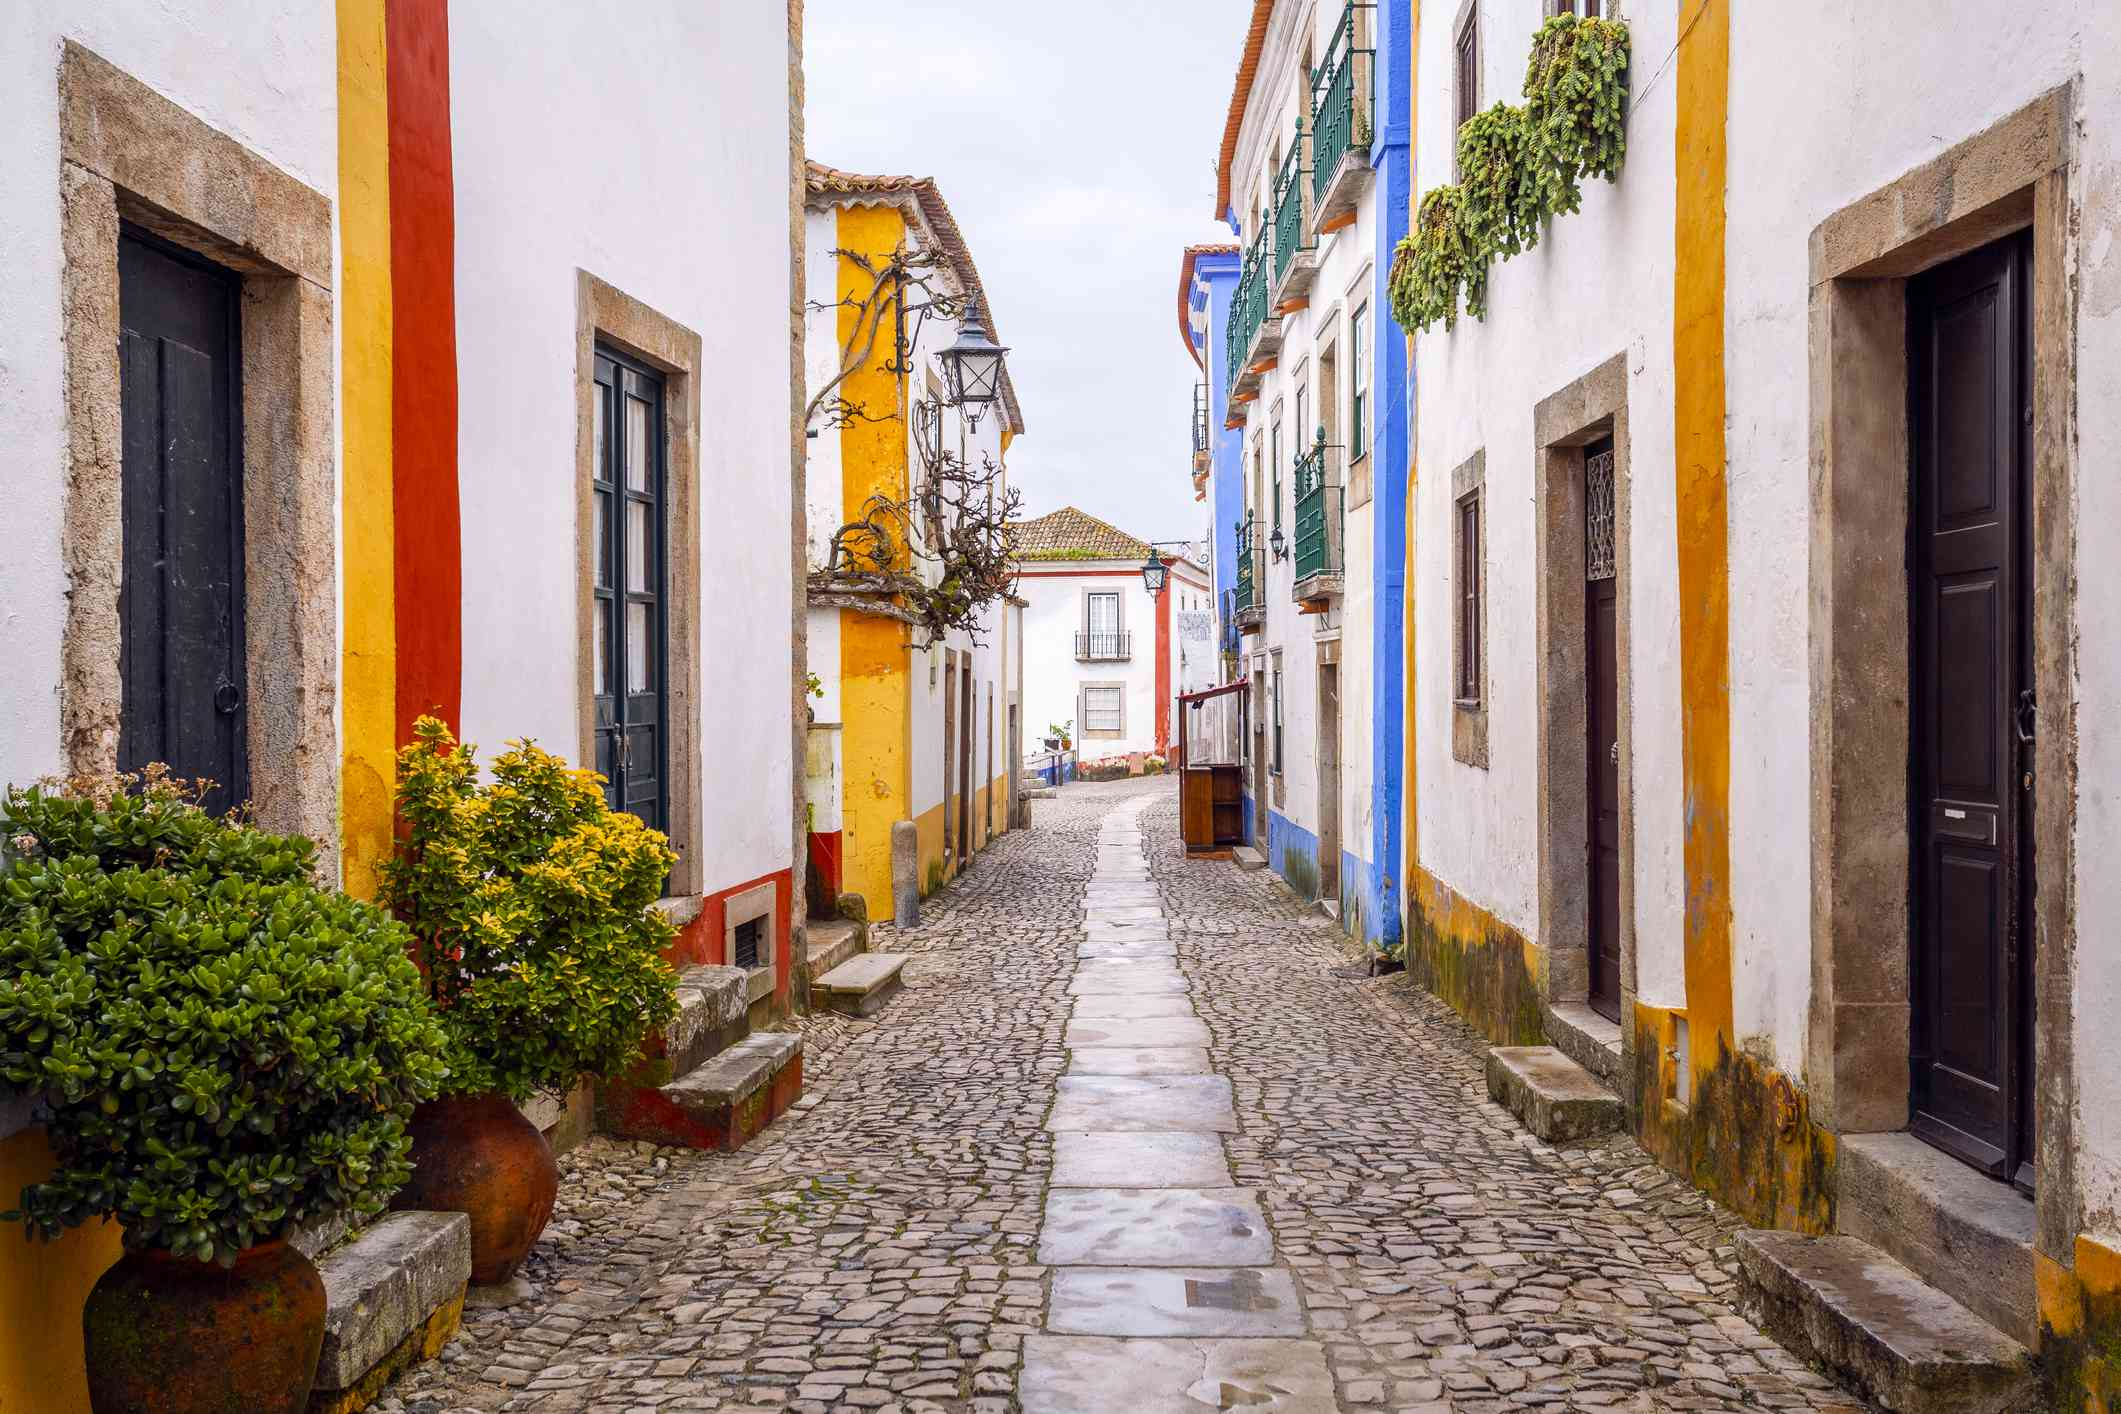 Colorful street in Obidos, Portugal